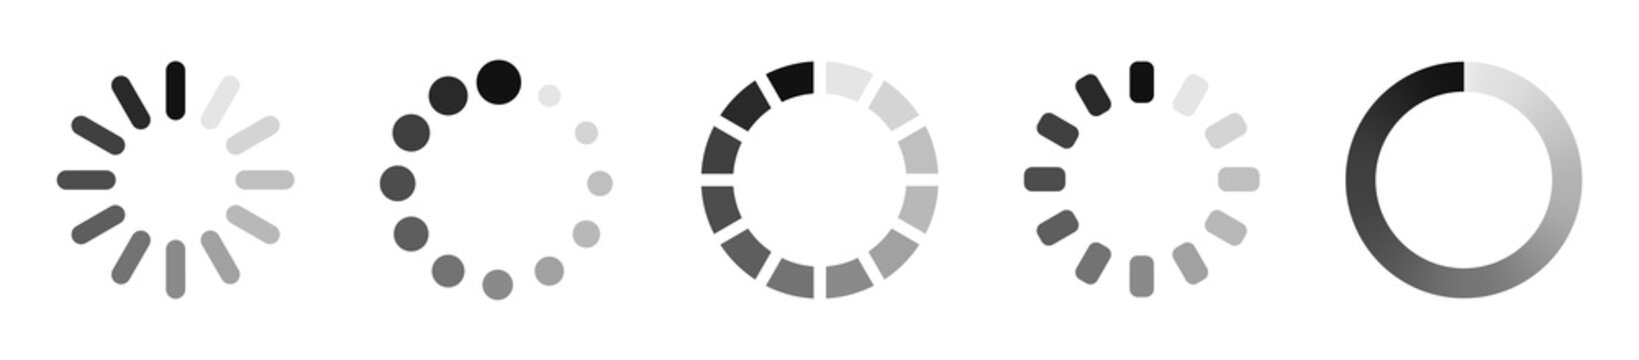 Loading icon set. Load bar collection. Vector illustration